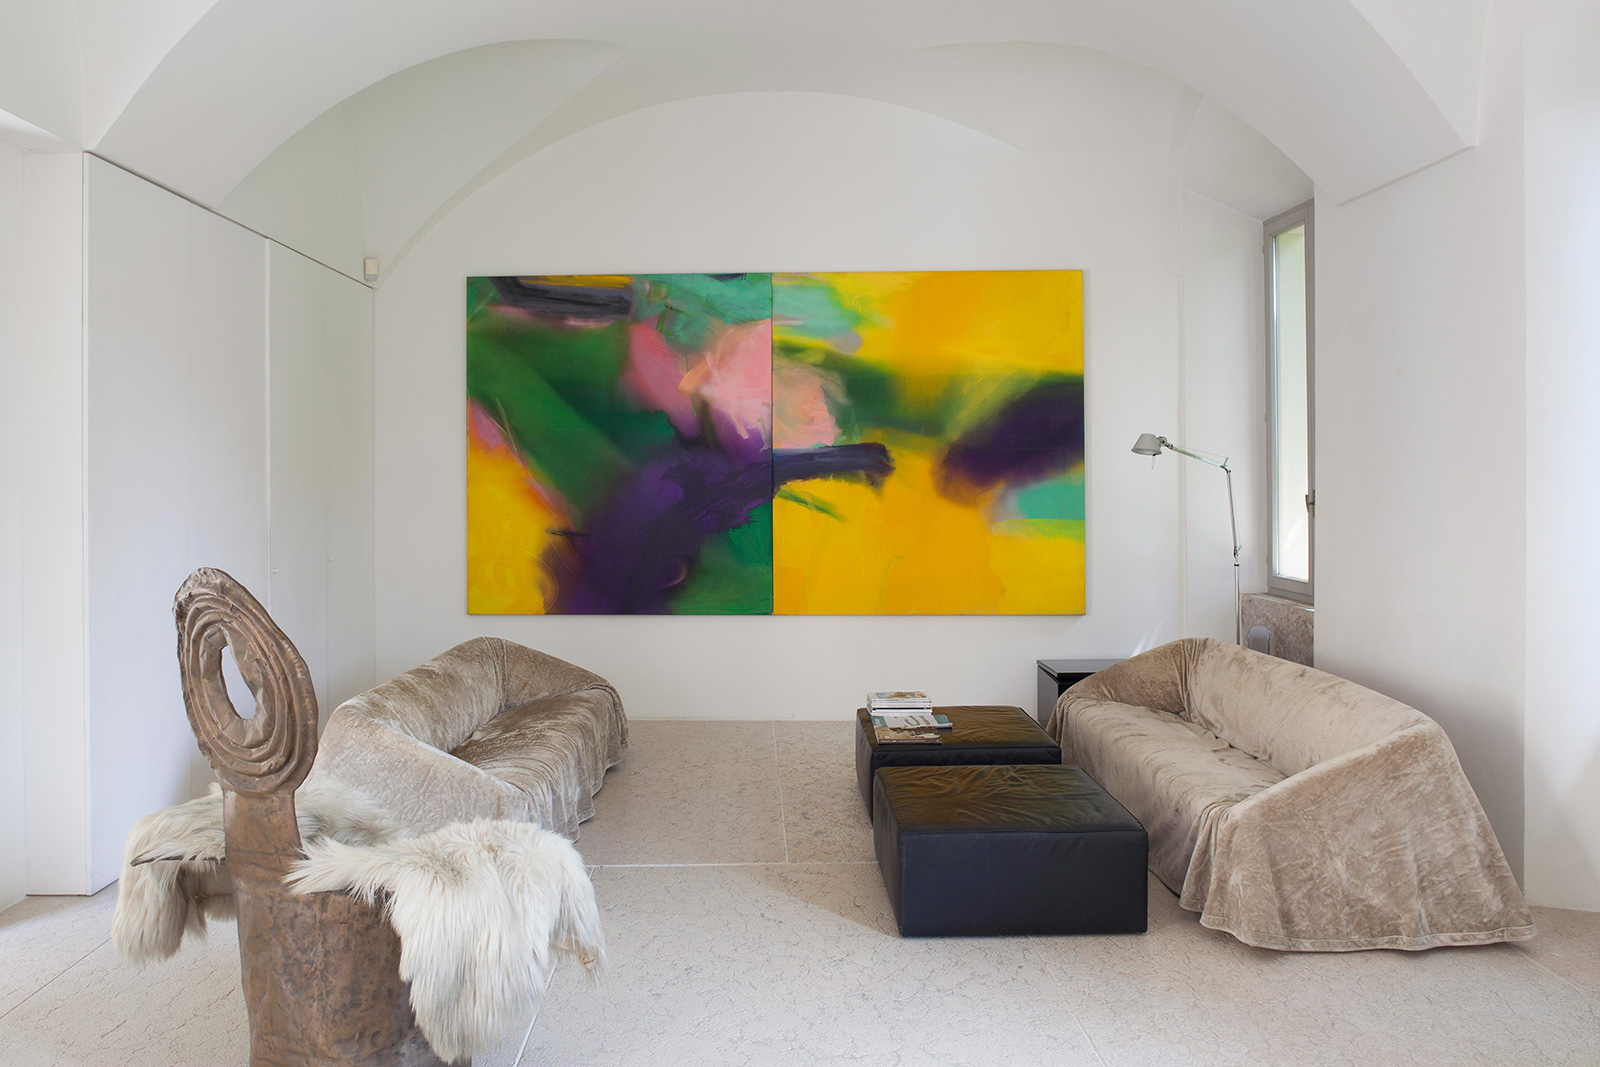 Guests can immerse themselves in art & design at Palazzo Beccaguti Cavriani